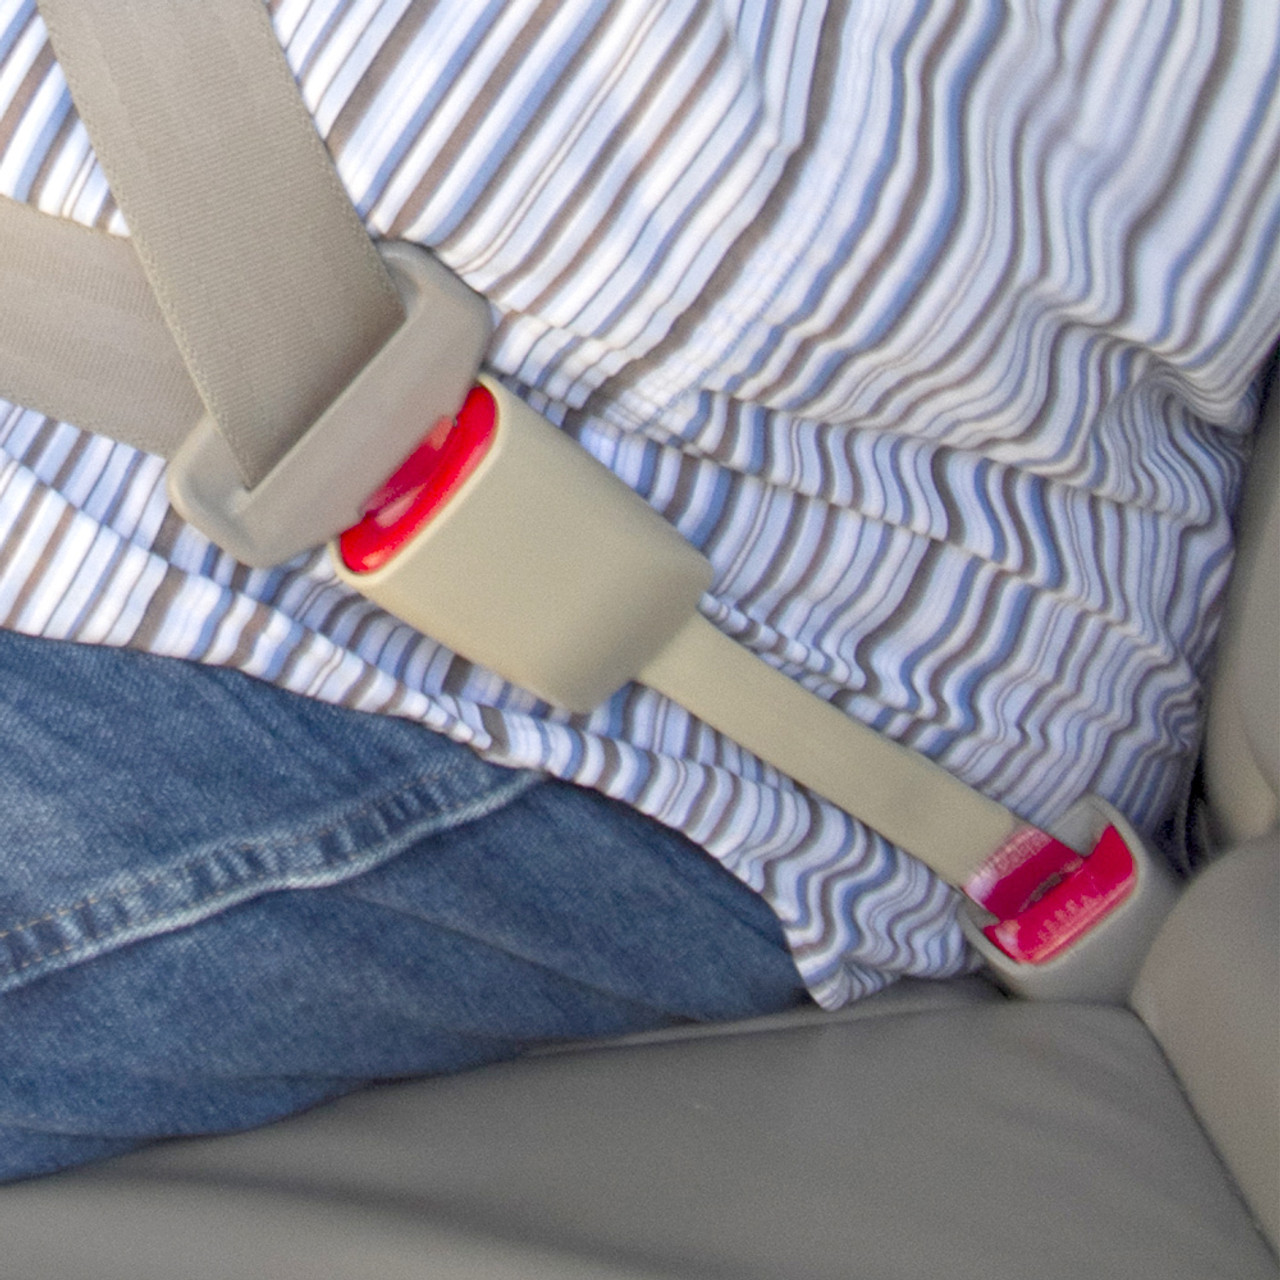 Mommax 2-Pack Rigid 7 Seat Belt Extender 7//8 Tongue Width Buckle Up to Drive Safely